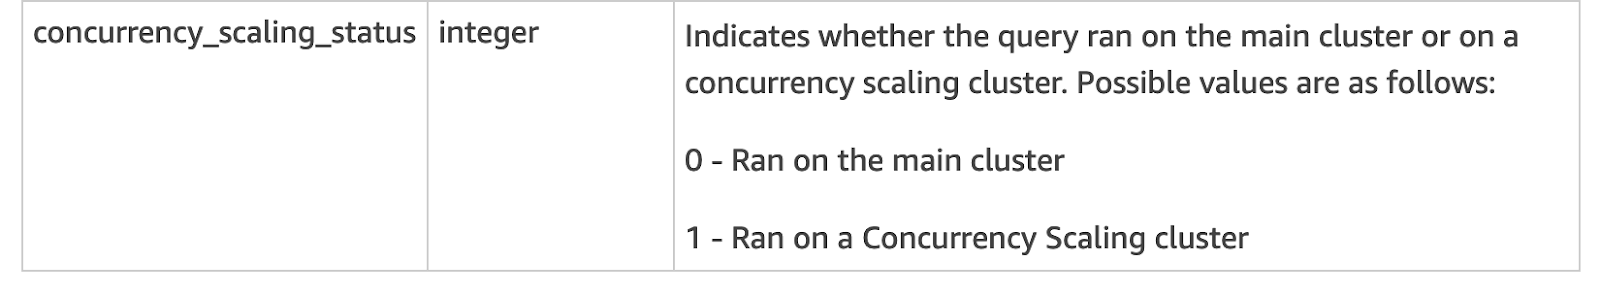 Wondering whether your query ran on the main cluster or Concurrency Scaling cluster? Here's where to look in your AWS Redshift Console.